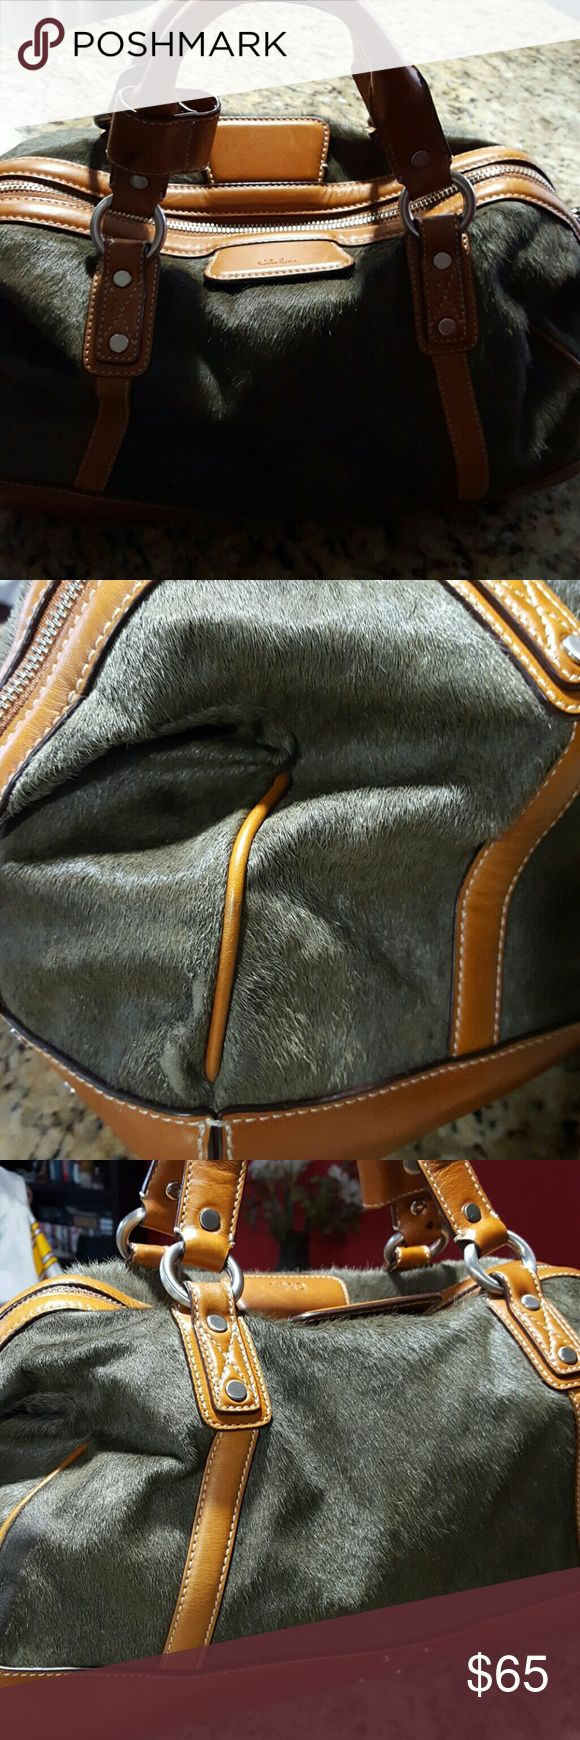 ** Hour Flash Sale**Cole Haan Calf Hair handbag Reposhed.....Need a little bigger... Very Good Condition. Inside Very clean and a little wear on the corners of bag. Excellent condition... Cole Haan Bags Satchels